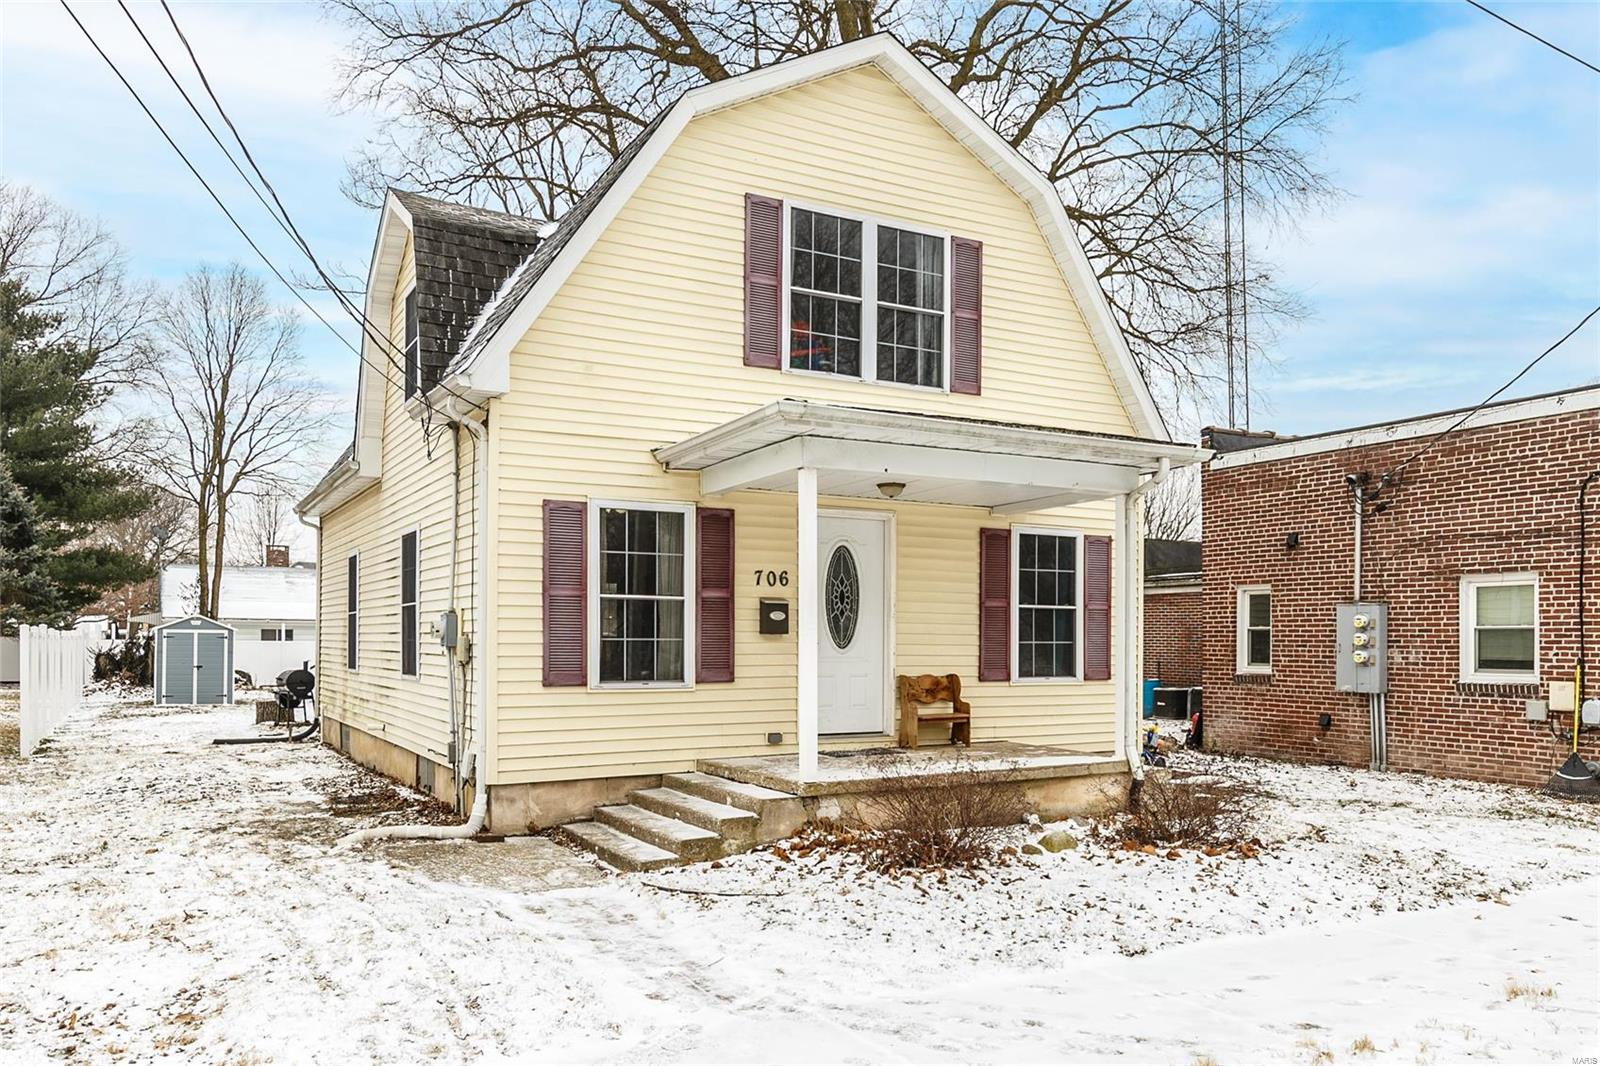 706 E Henrichs Property Photo - Litchfield, IL real estate listing